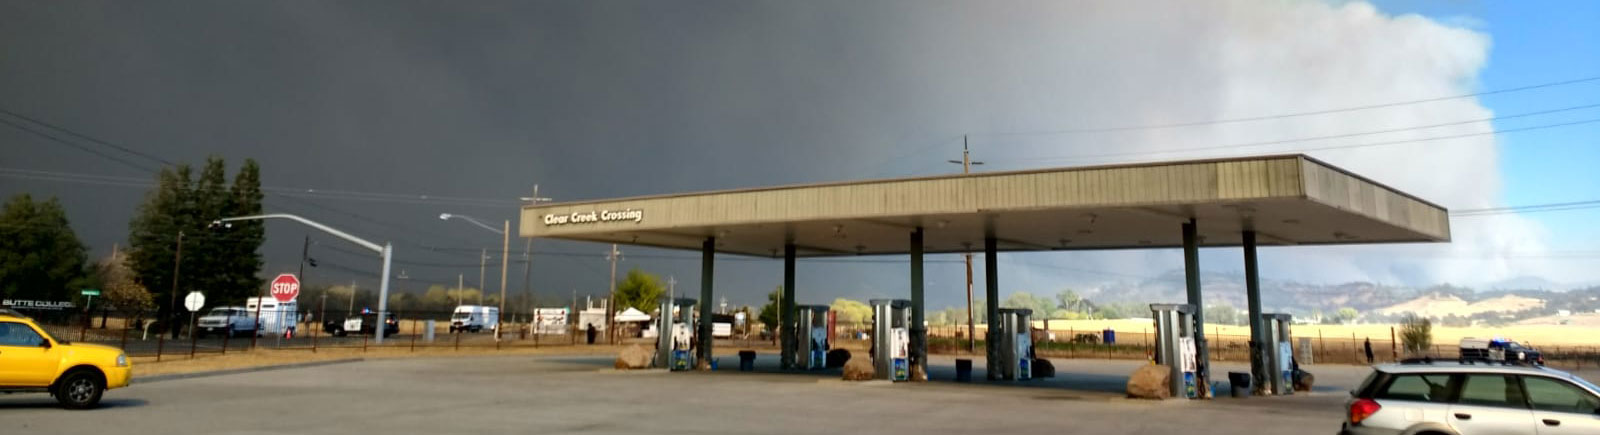 gas station with smoke from a fire in the background